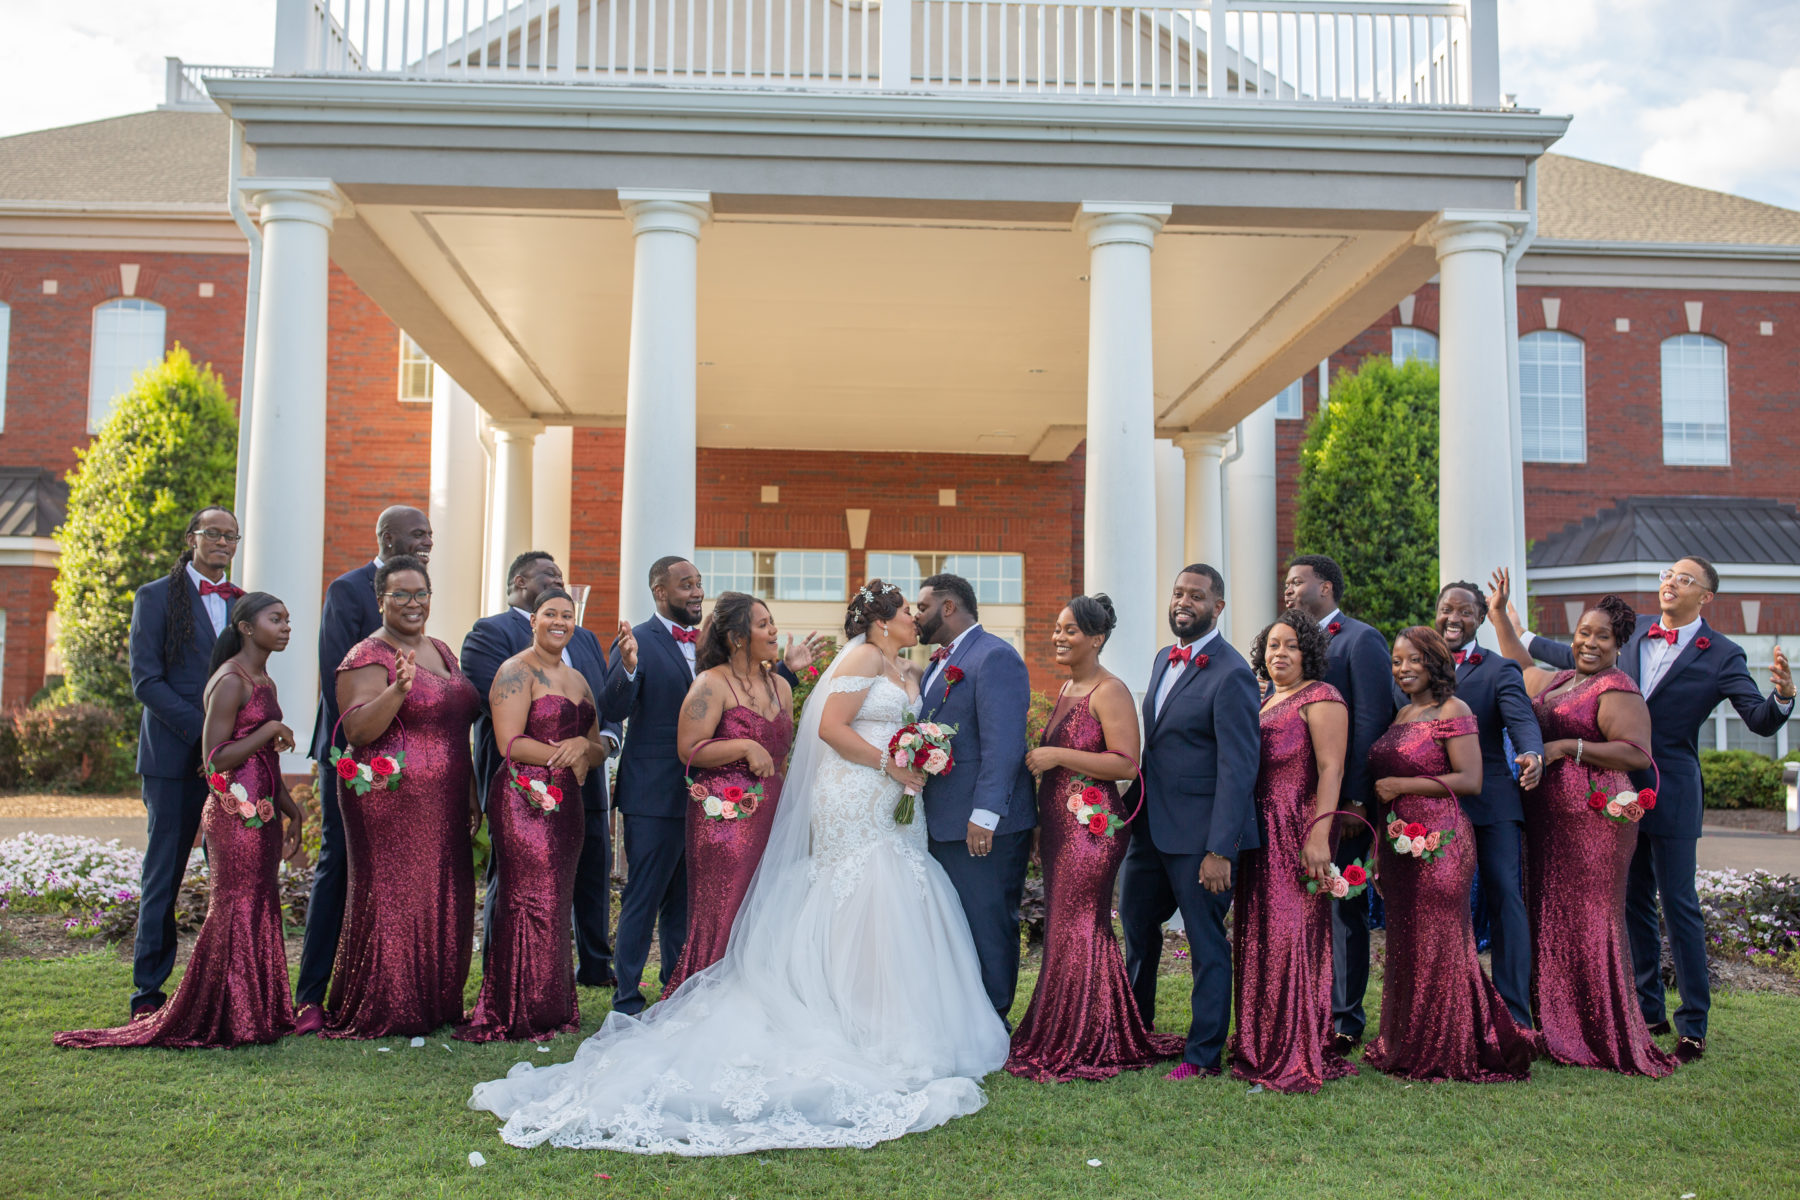 Navy and burgundy wedding: Luxurious Stone Rivers Country Club Wedding featured on Nashville Bride Guide